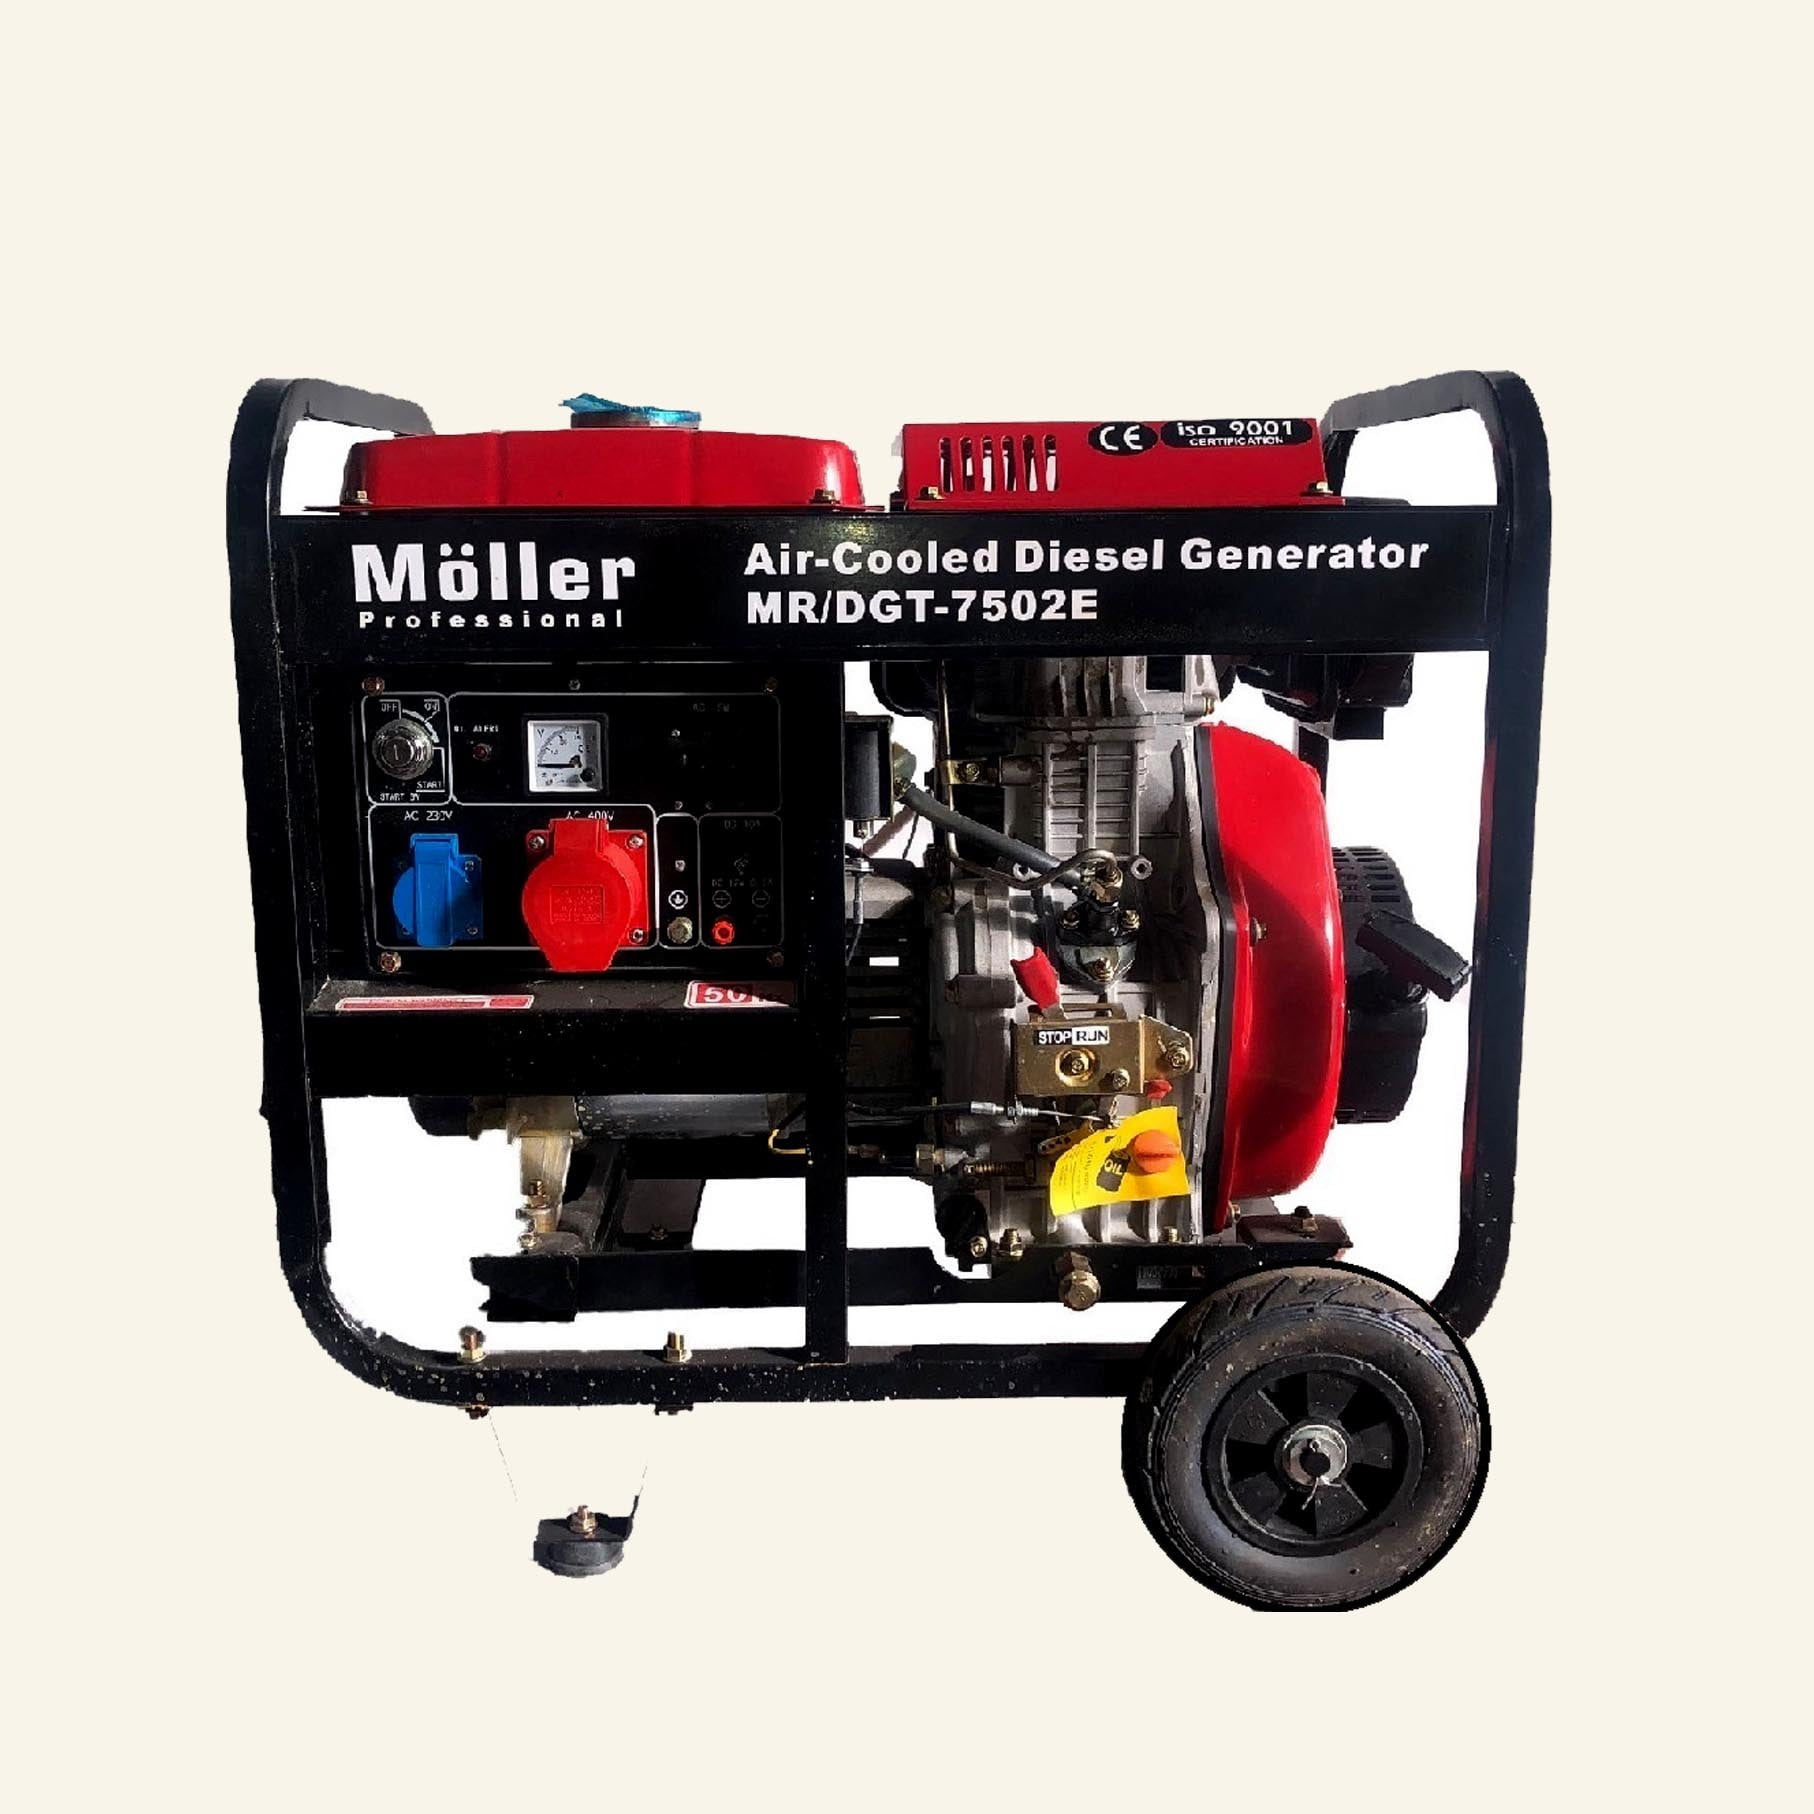 גנרטור פתוח דיזל (סולר) 7500W תלת פאזי  מבית MOLLER GERMANY